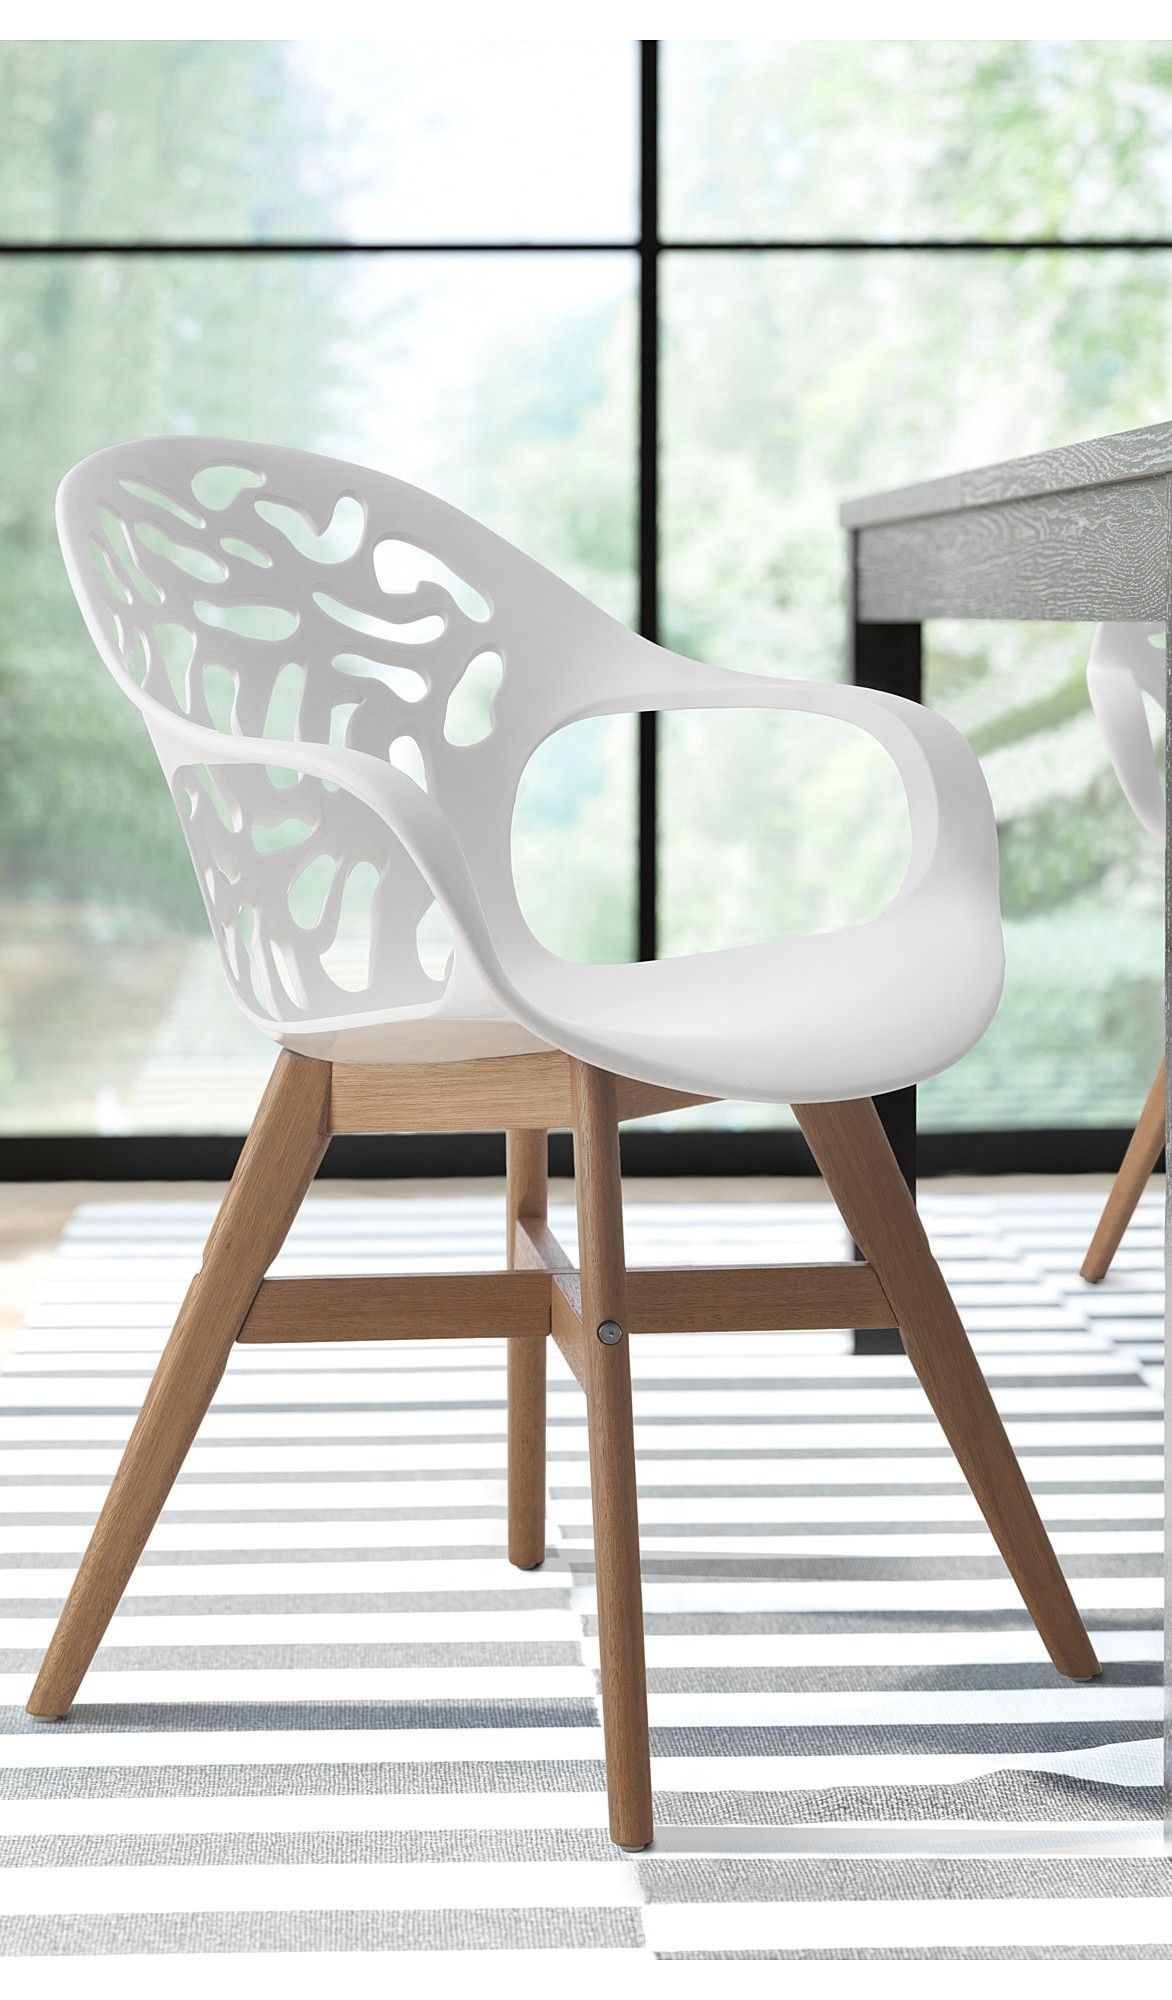 ANGRIM Chair white patterned (With images) Ikea chair